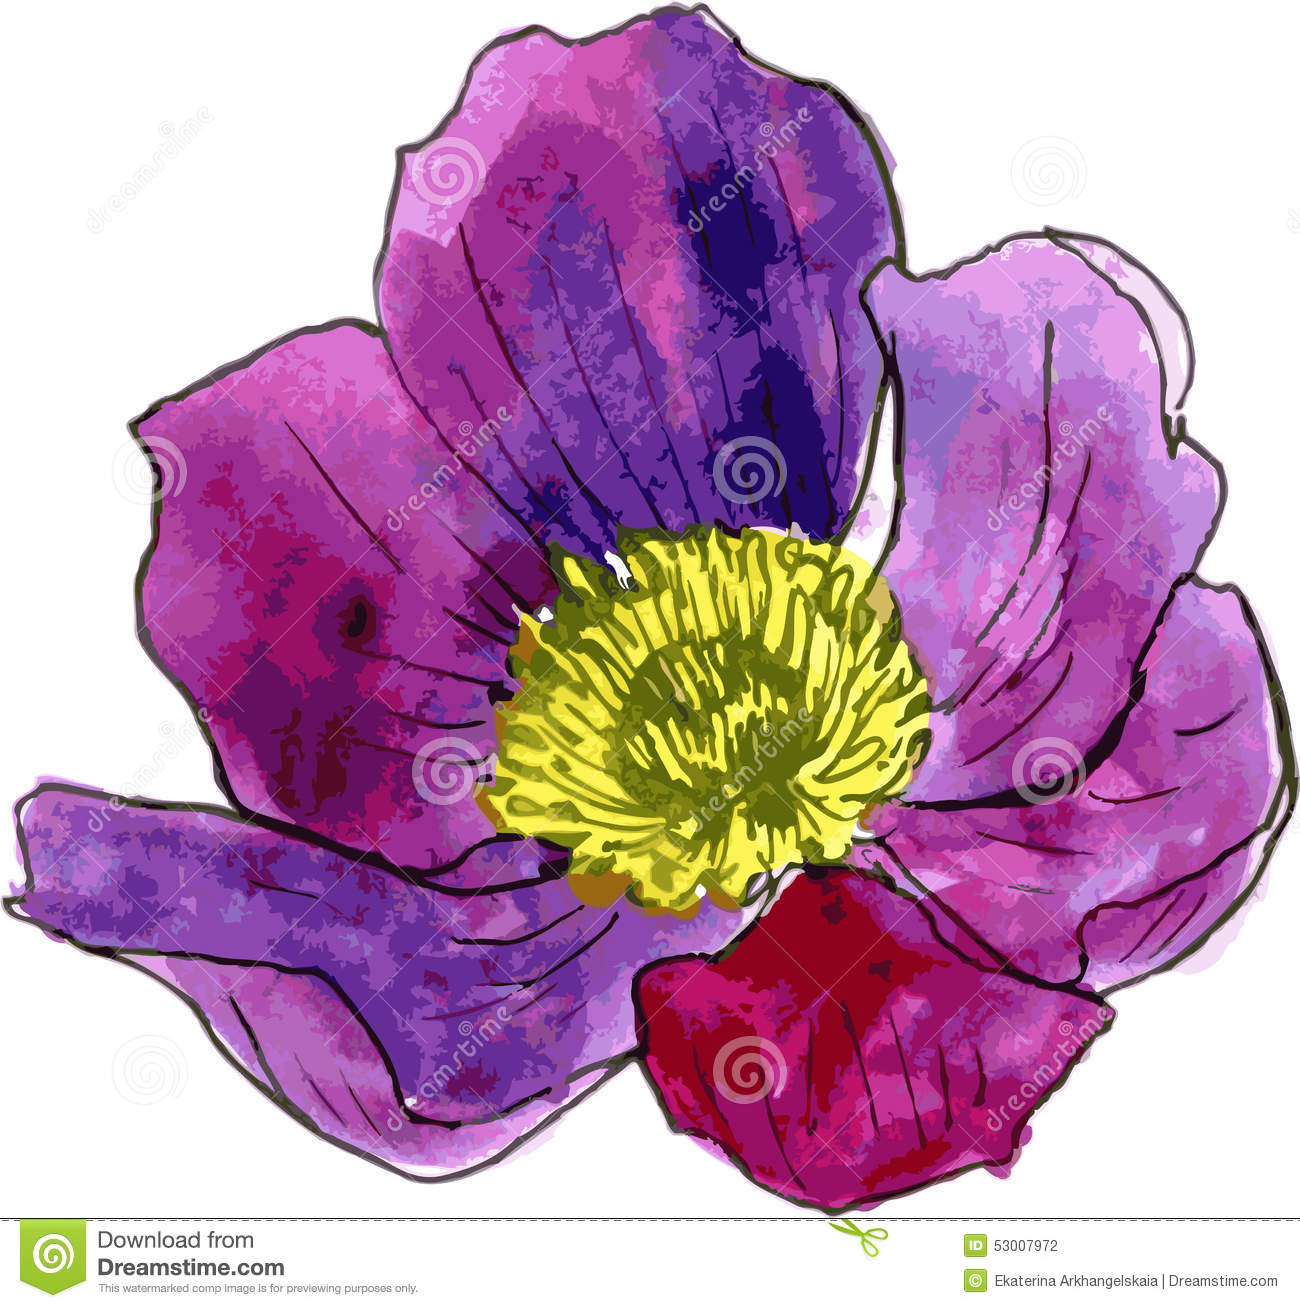 This is an image of Striking Purple Flowers Drawing